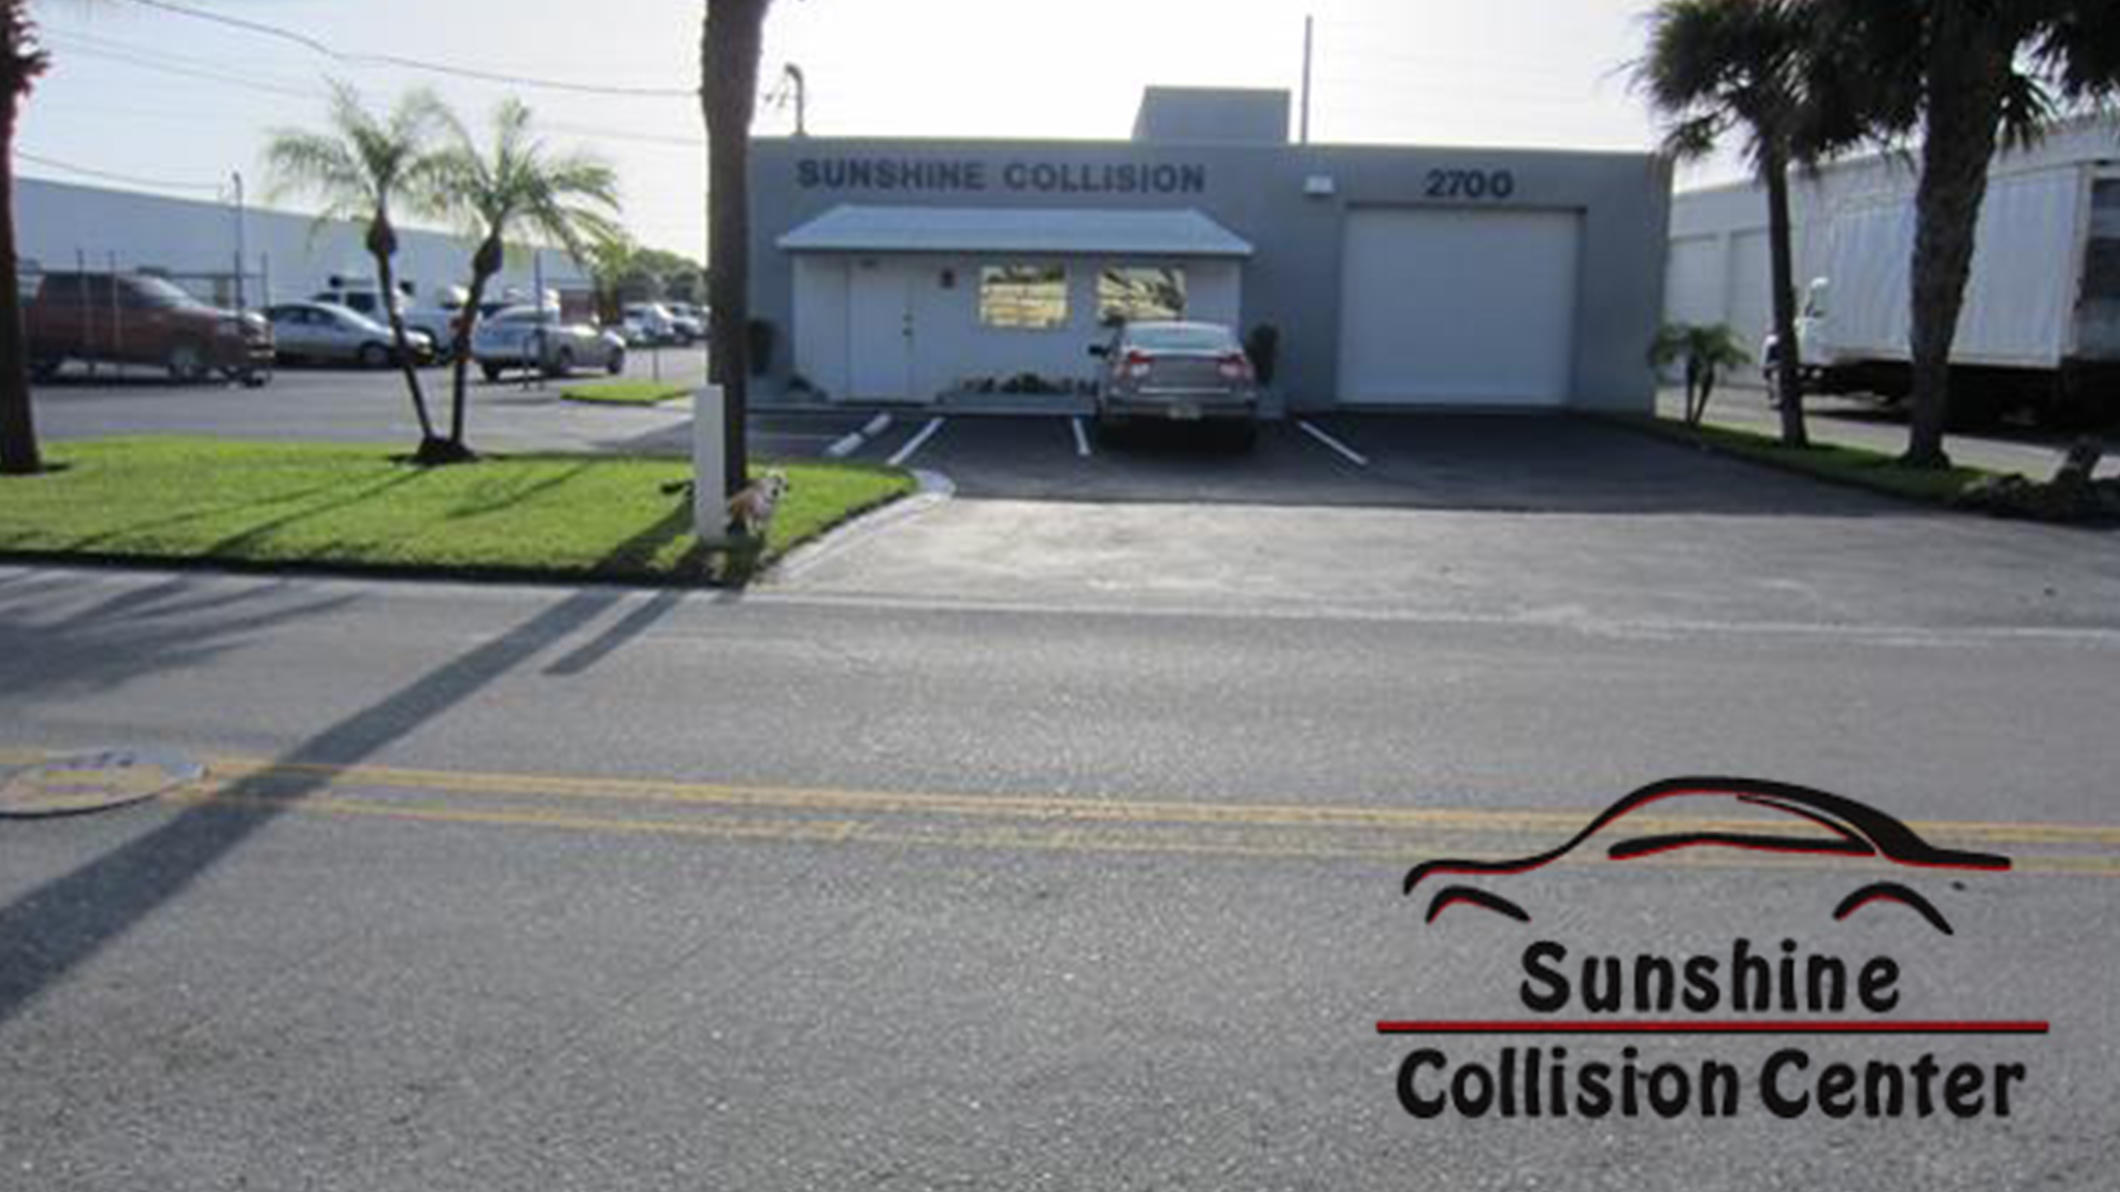 Sunshine Collision Center image 4